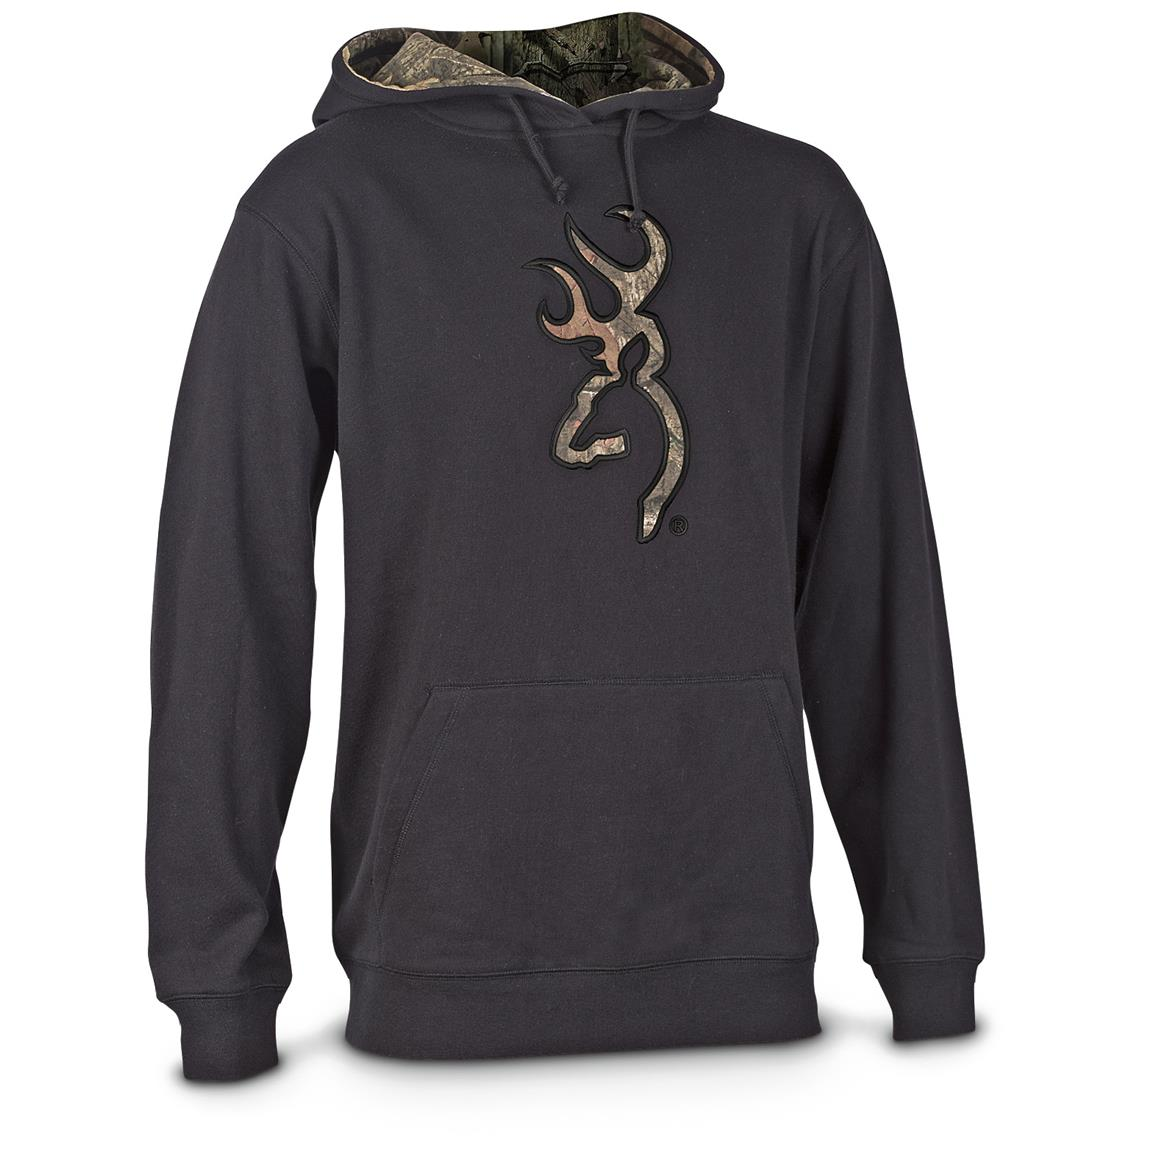 Browning Men's Appliqué Buckmark Hoodie Jacket, Black / Mossy Oak Infinity